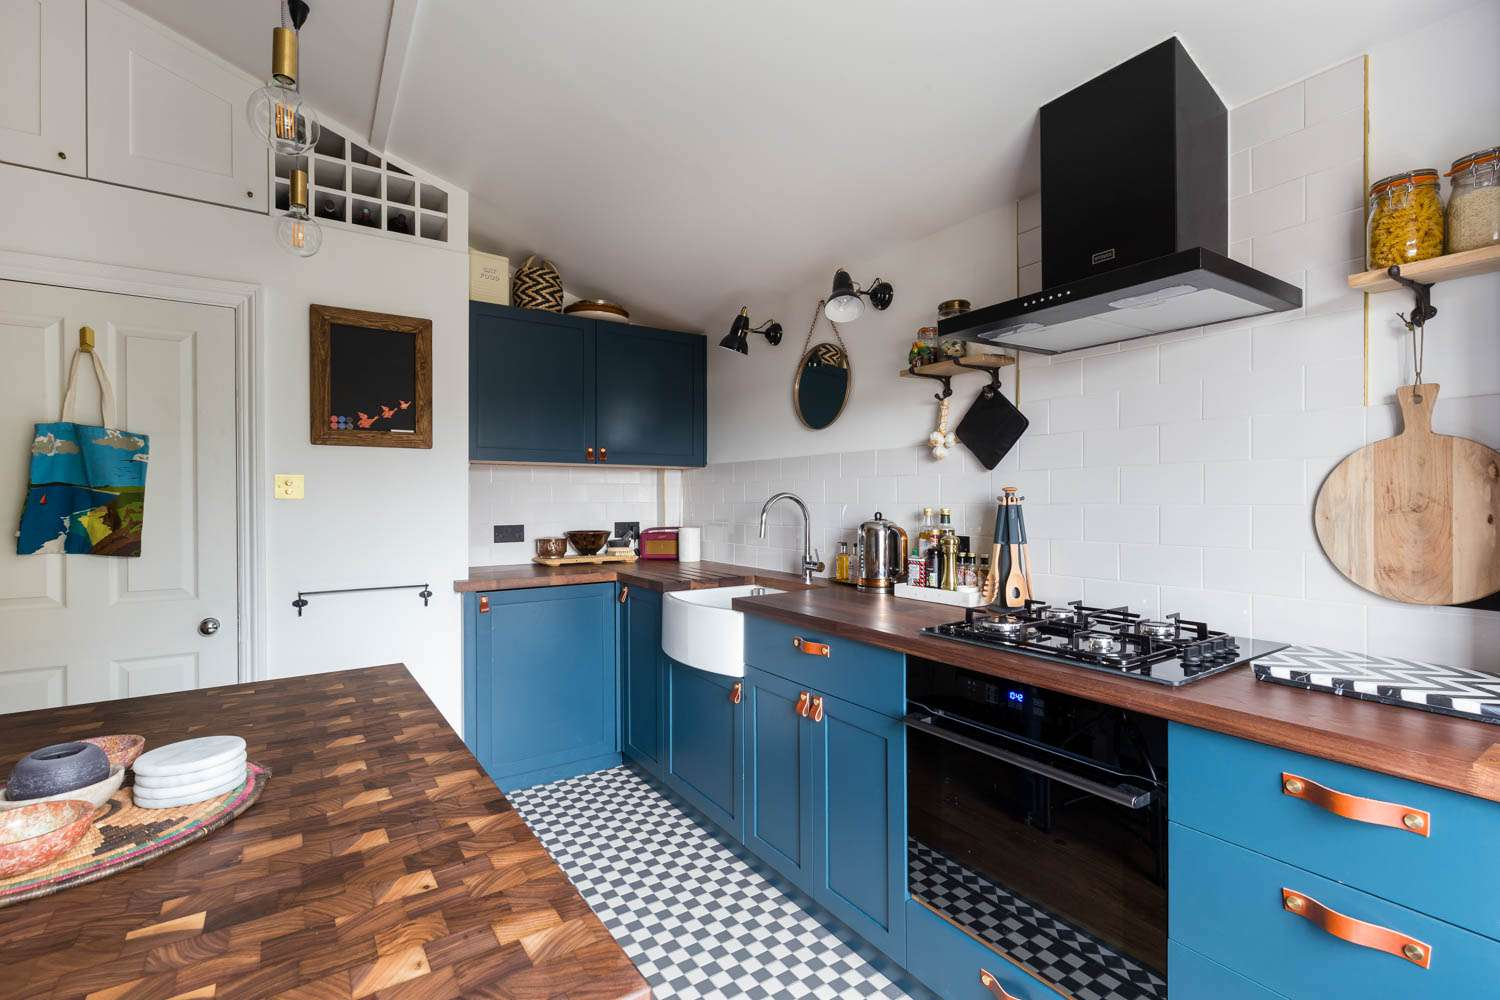 Blue cabinets and leather pulls